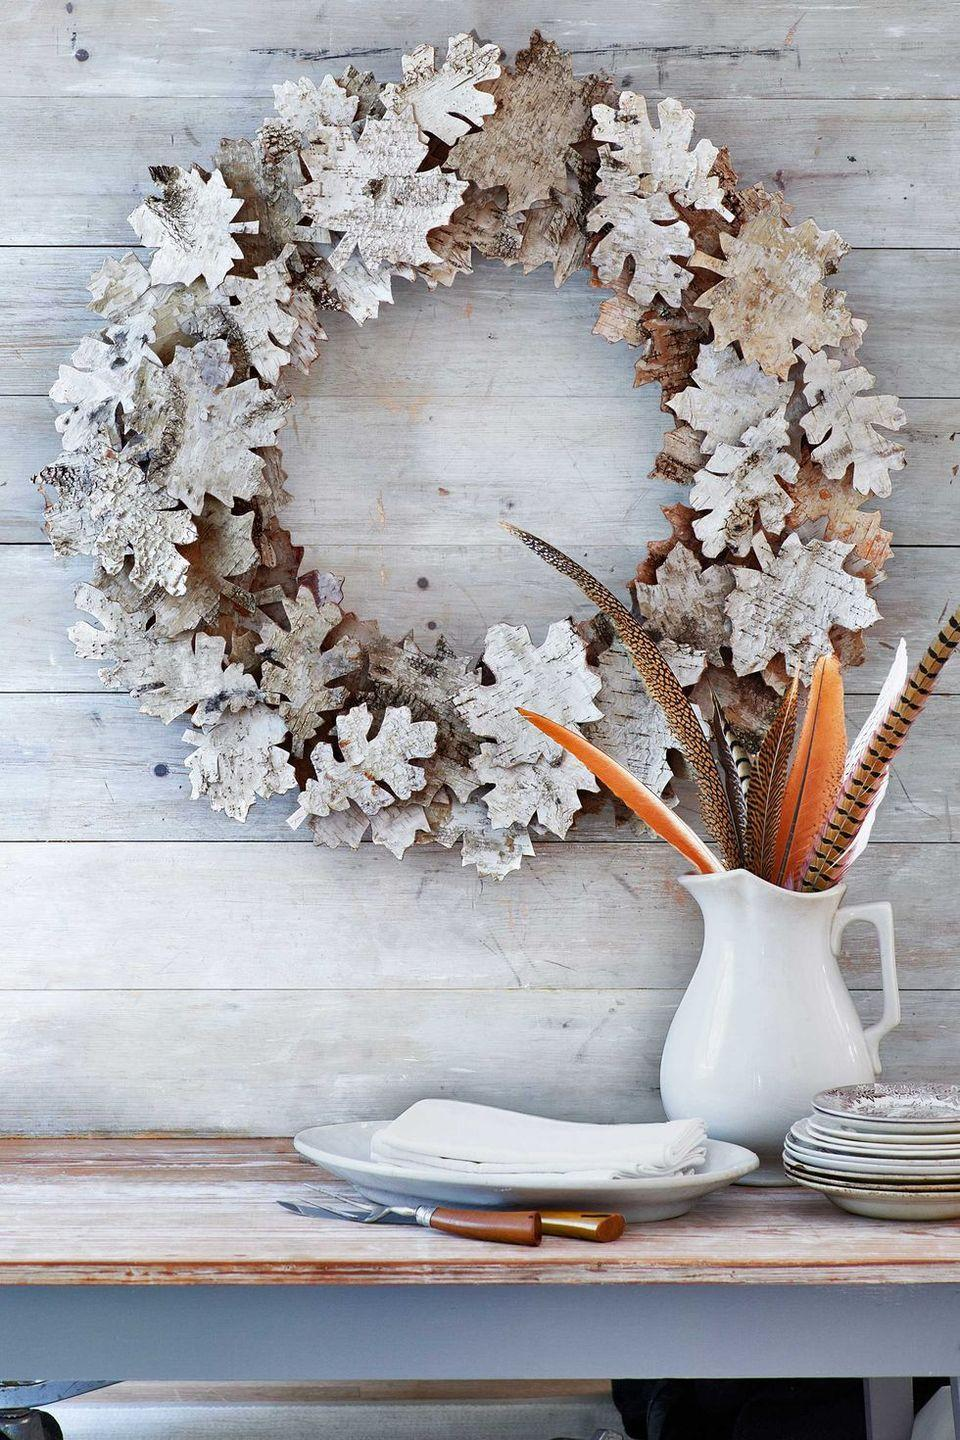 """<p>Birch bark is the key to these autumn """"leaves."""" <strong><br></strong></p><p><strong>Make the wreath</strong><strong>:</strong> You'll need twenty-four 6 3/4""""W x 20 1/2""""L sheets of birch bark, a 20-inch-diameter <a href=""""https://www.amazon.com/Panacea-36003-Wreath-Frame-Green/dp/B004BPTGUU/?linkCode=ogi&tag=syn-yahoo-20&ascsubtag=%5Bartid%7C10050.g.2610%5Bsrc%7Cyahoo-us"""" rel=""""nofollow noopener"""" target=""""_blank"""" data-ylk=""""slk:foam wreath form"""" class=""""link rapid-noclick-resp"""">foam wreath form</a>, and 45 small wooden cubes to act as risers<em>. </em>First, print and cut out our <a href=""""http://clv.h-cdn.co/assets/cm/15/27/559438a2f0fa5_-_leaf-templates-1113.pdf"""" rel=""""nofollow noopener"""" target=""""_blank"""" data-ylk=""""slk:oak- and maple-leaf templates"""" class=""""link rapid-noclick-resp"""">oak- and maple-leaf templates</a>. Trace 75 assorted leaves onto the birch-bark sheets, and cut out. Varying the leaf type, hot-glue 30 leaves onto the wreath form. Then, hot-glue a wooden cube onto the back of each remaining leaf. Using our photo as a guide, hot-glue the cube-backed leaves atop the original leaves. </p>"""